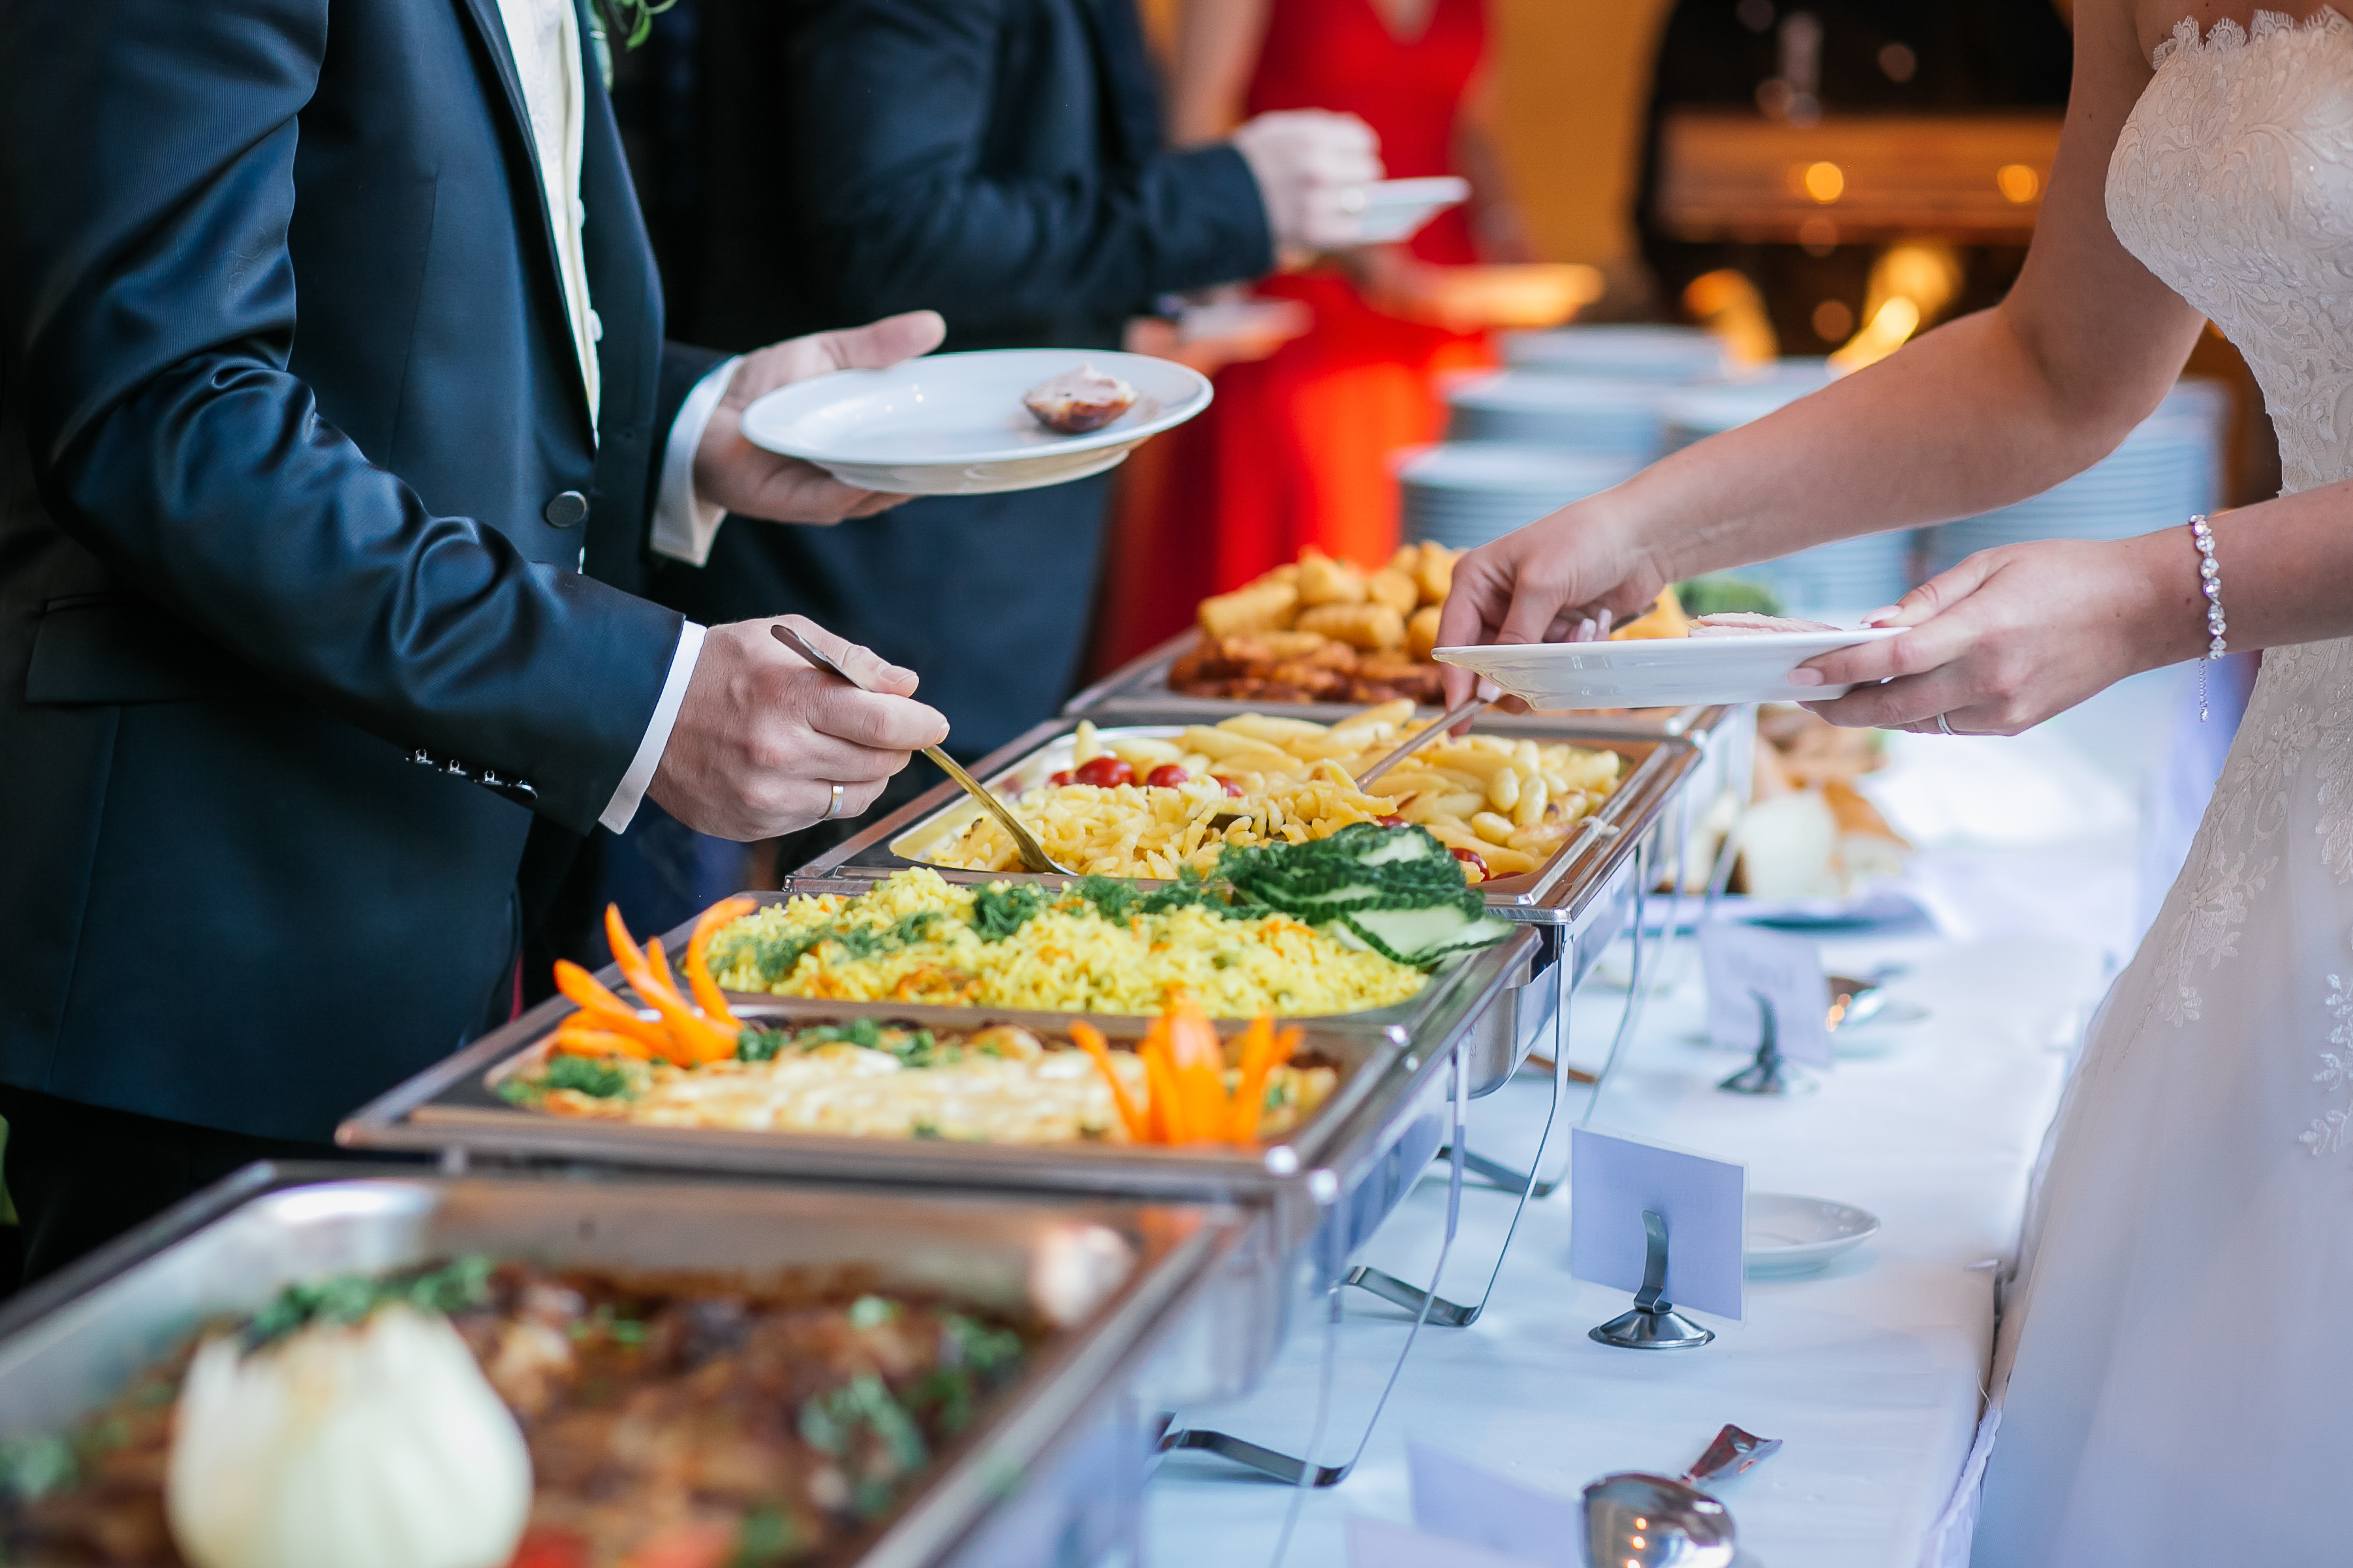 The Best Southern Arizona and Tucson Catering of the finest quality Peruvian cuisine.